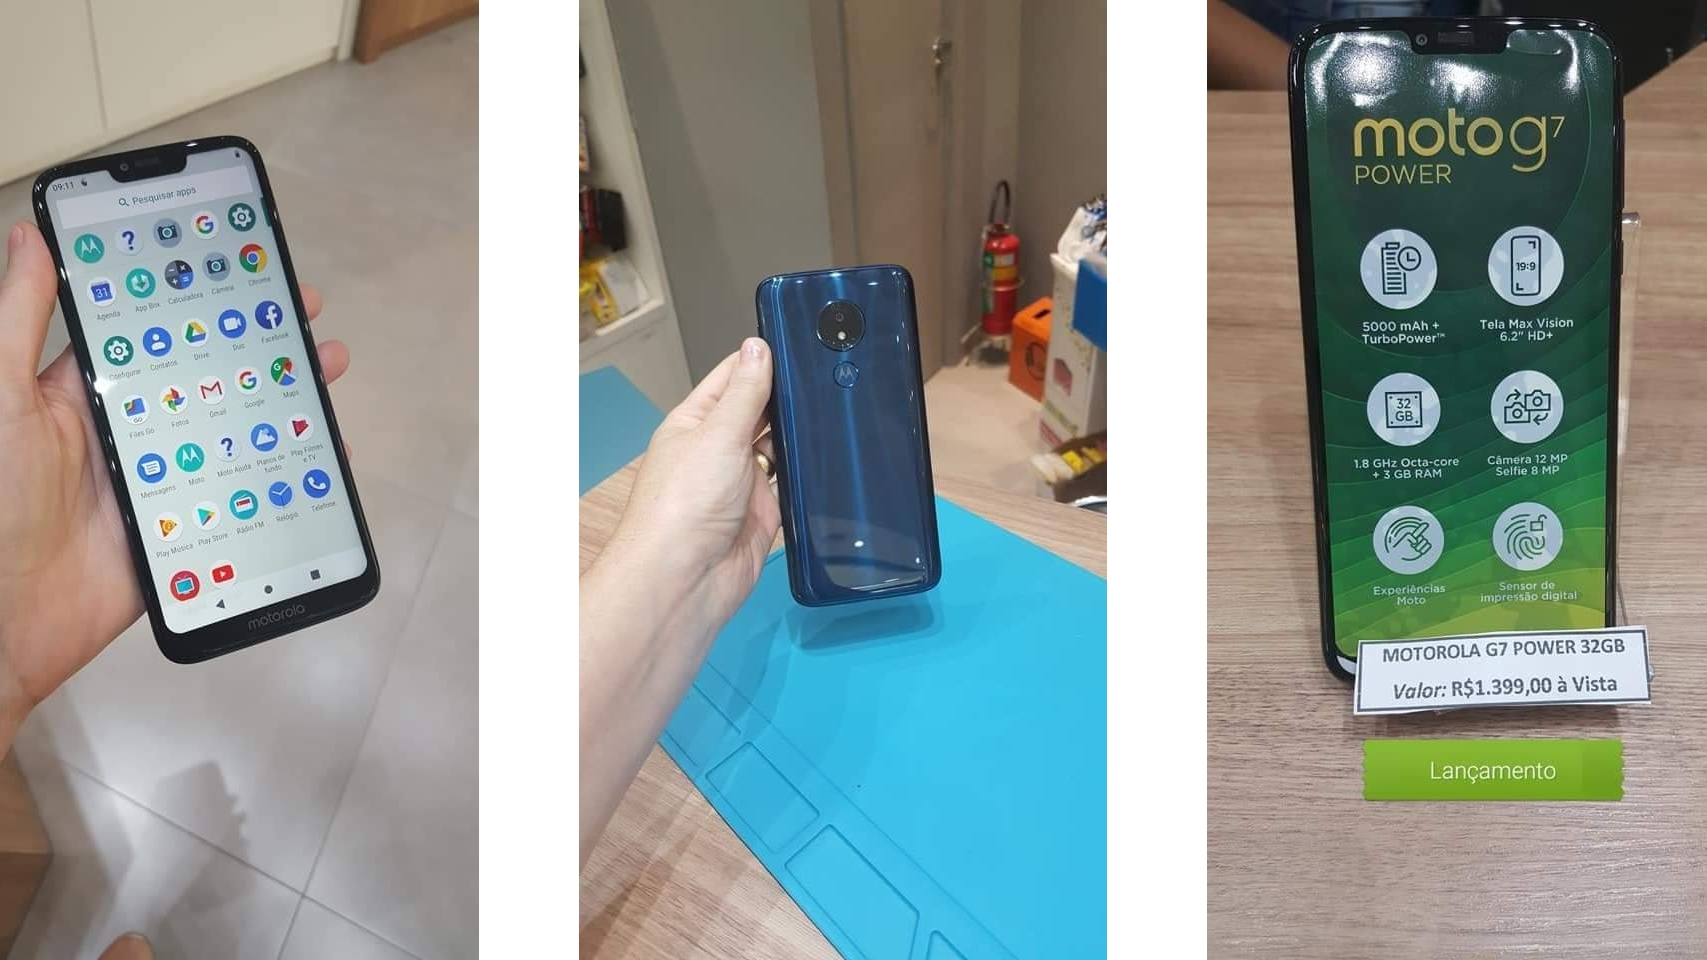 Moto G7 and G7 Power images provide a good look at the upcoming phones